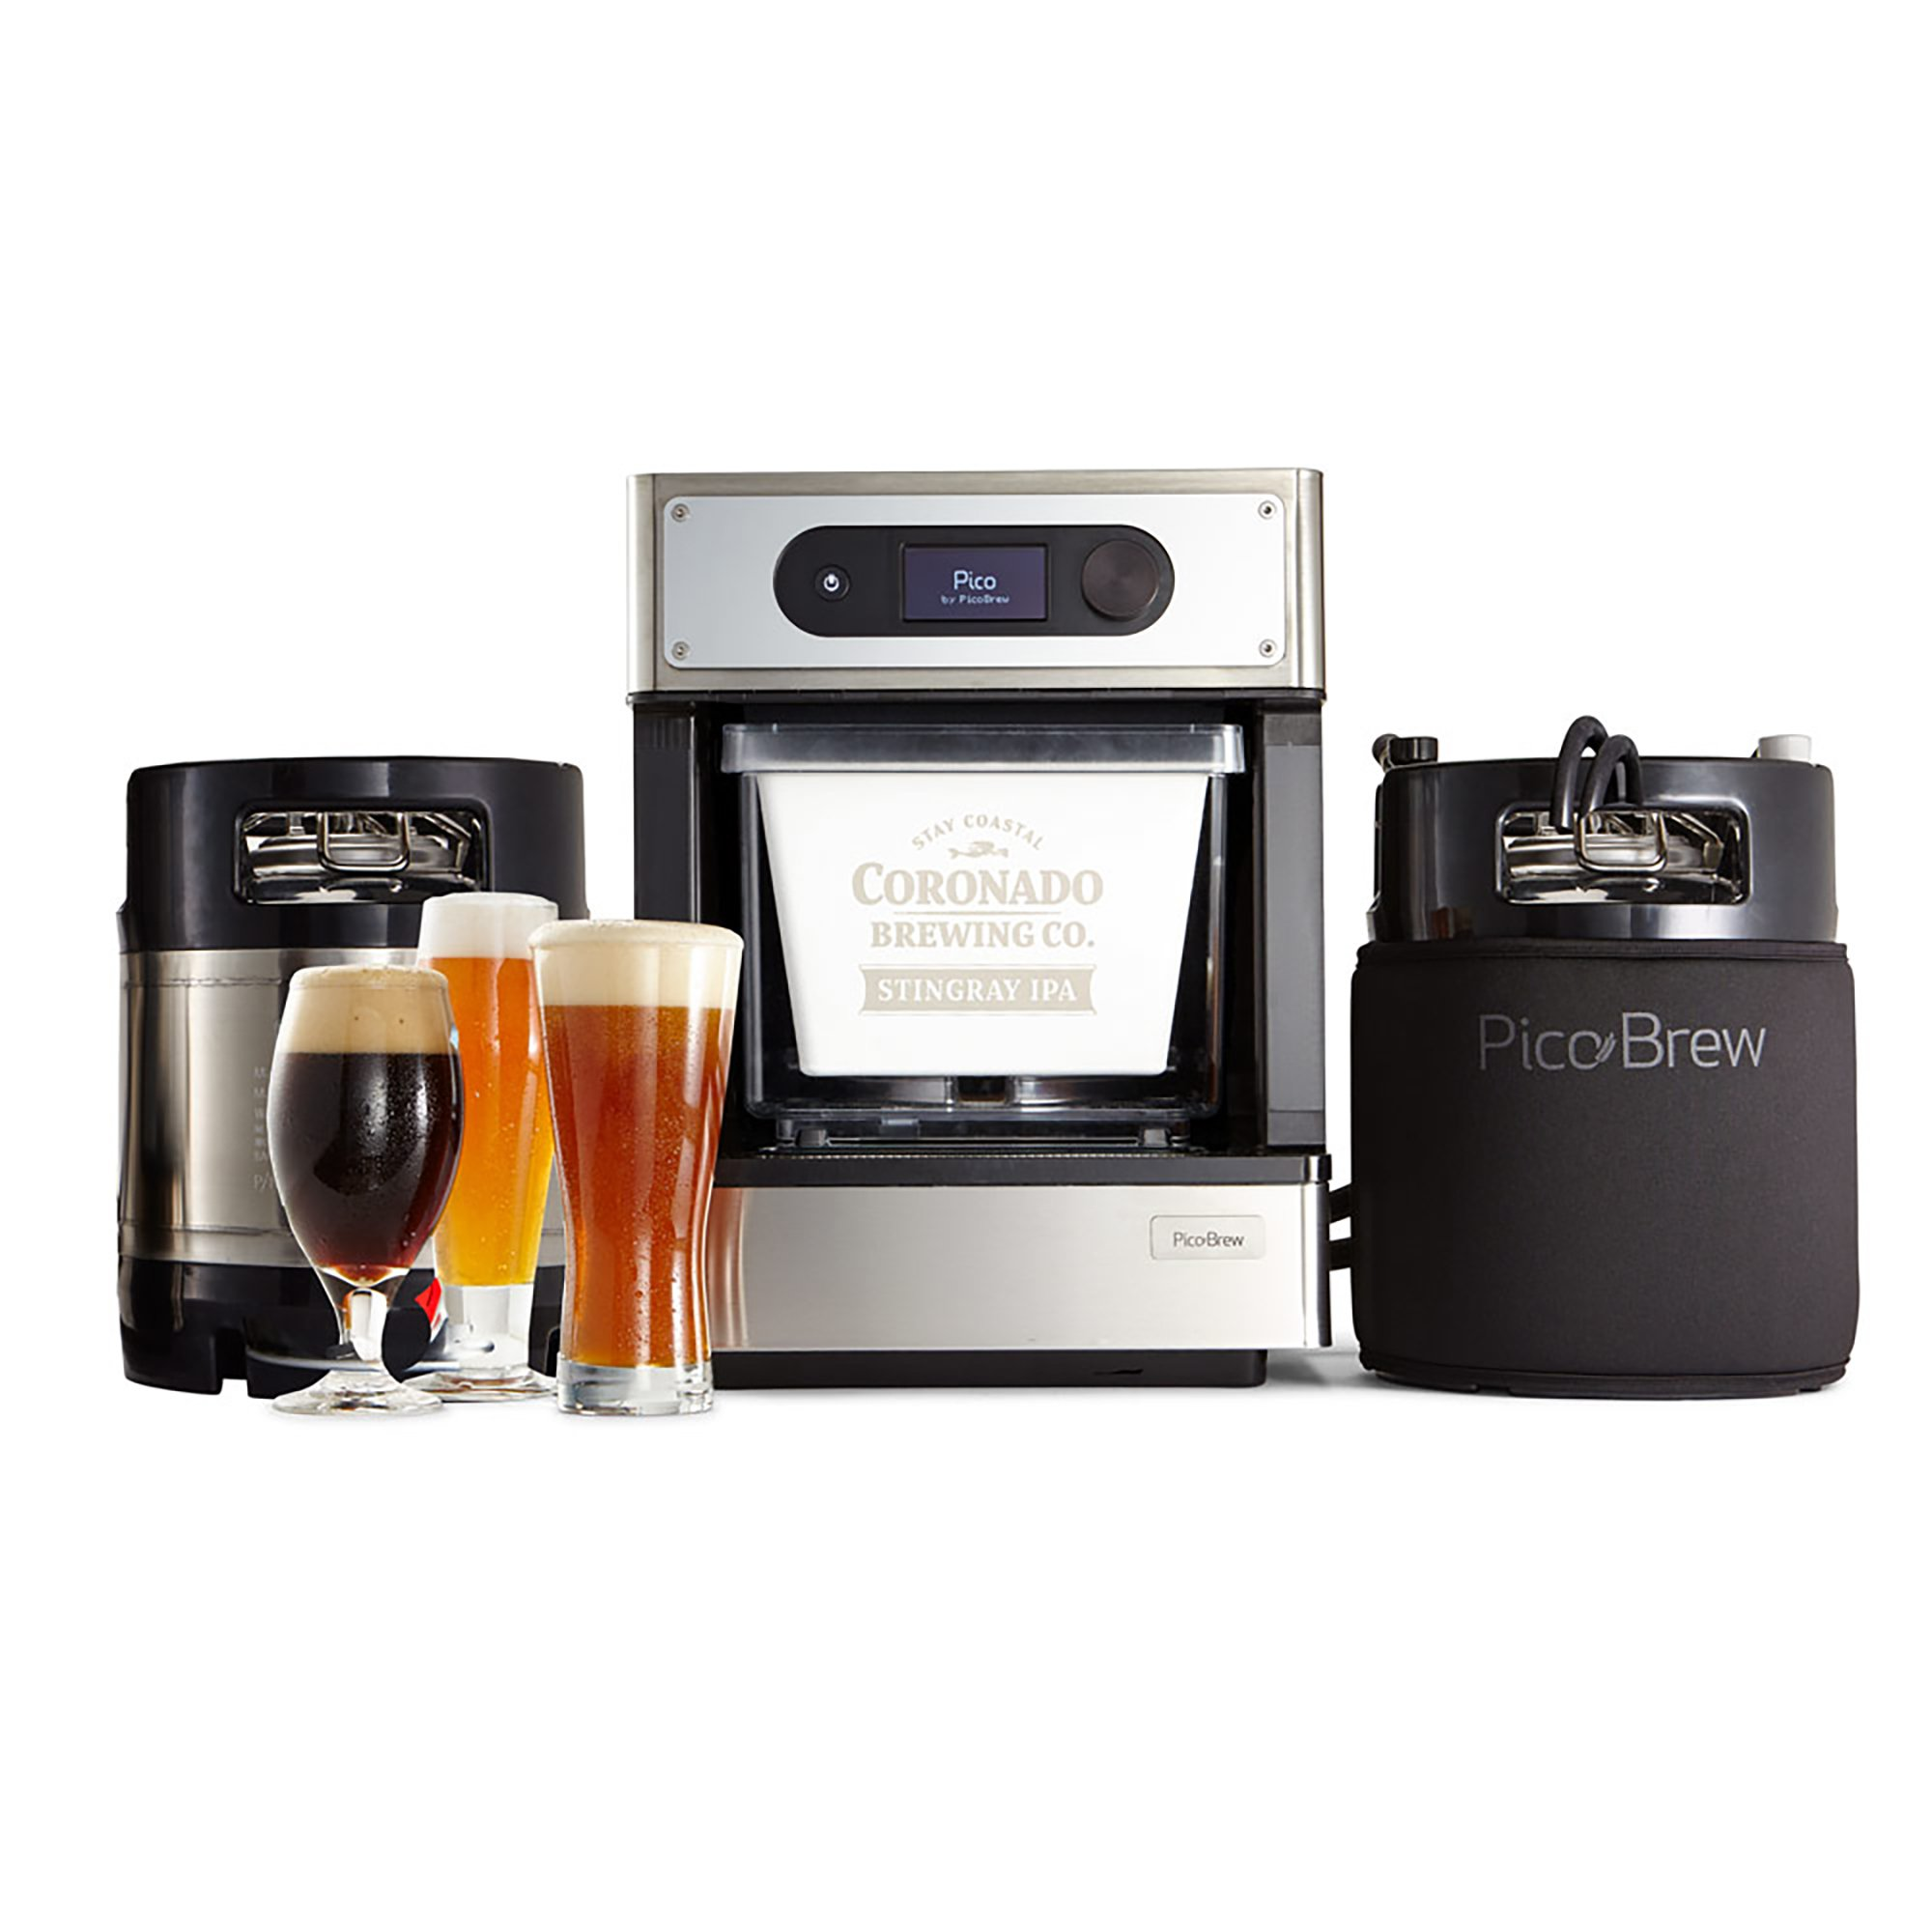 Pico Pro Craft Beer Brewing Appliance for Homebrewing